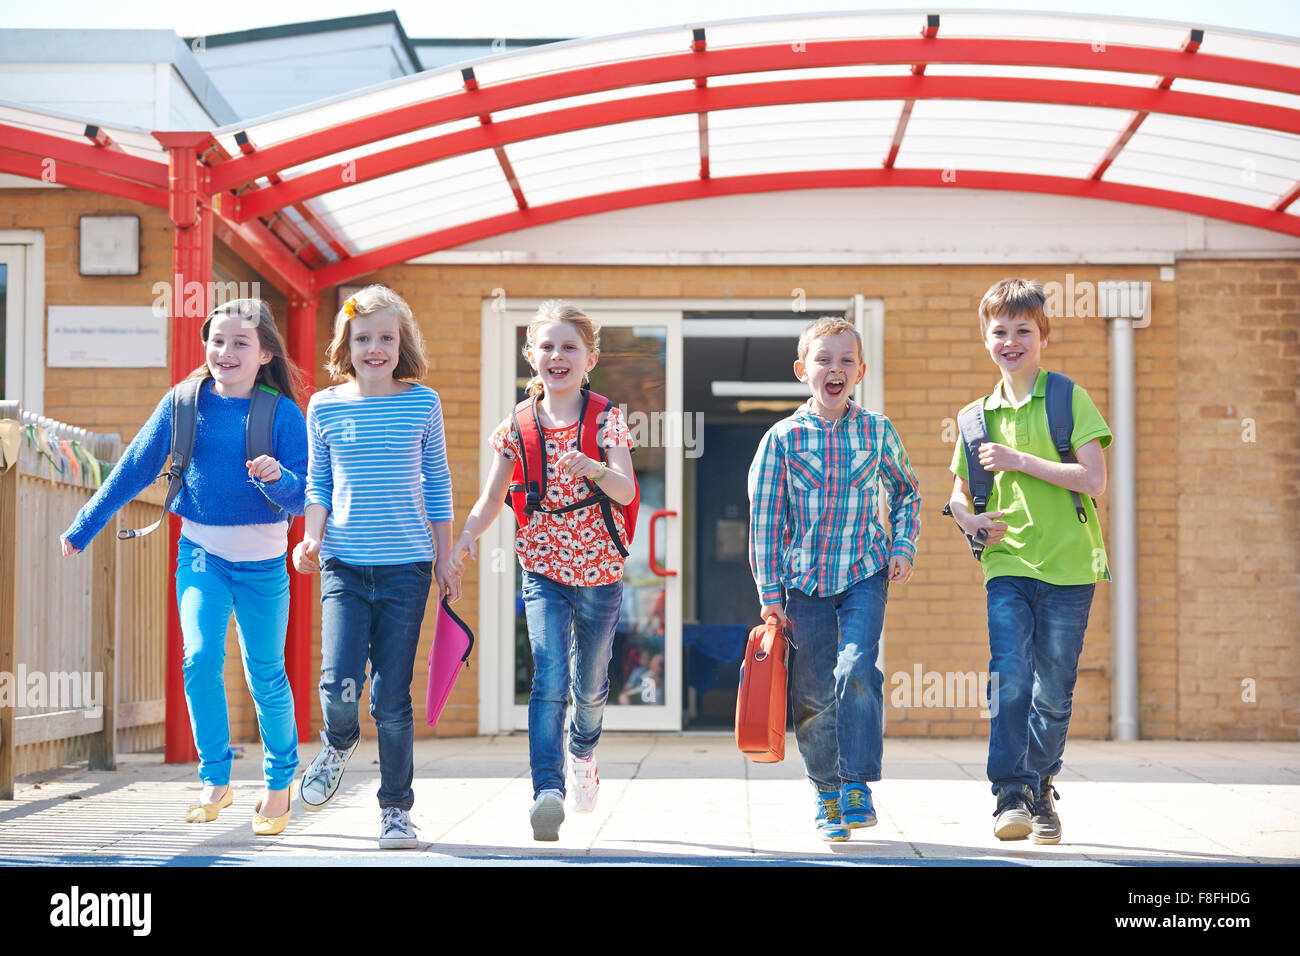 Schoolchildren Running Into Playground At End Of Class - Stock Image